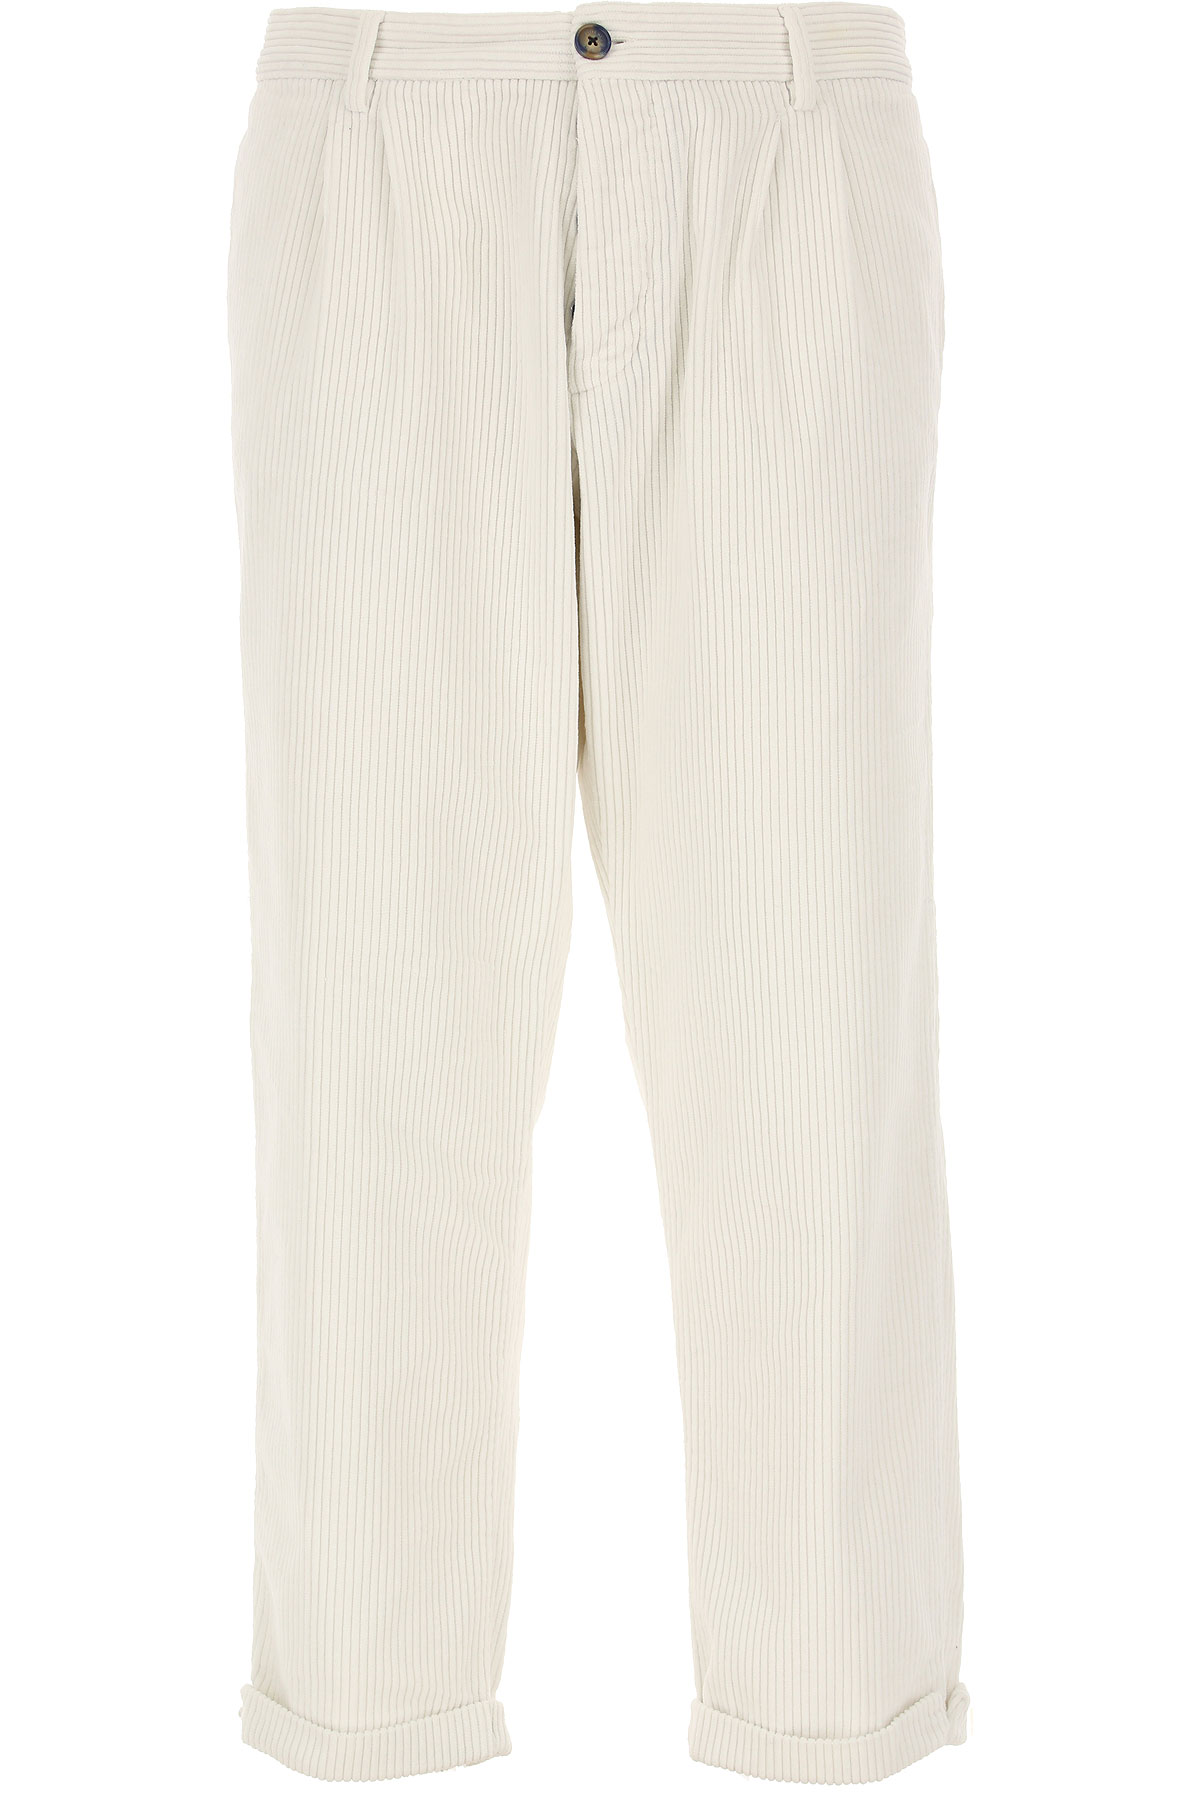 J.W. Brine Pants for Men On Sale in Outlet, White, Cotton, 2019, 36 38